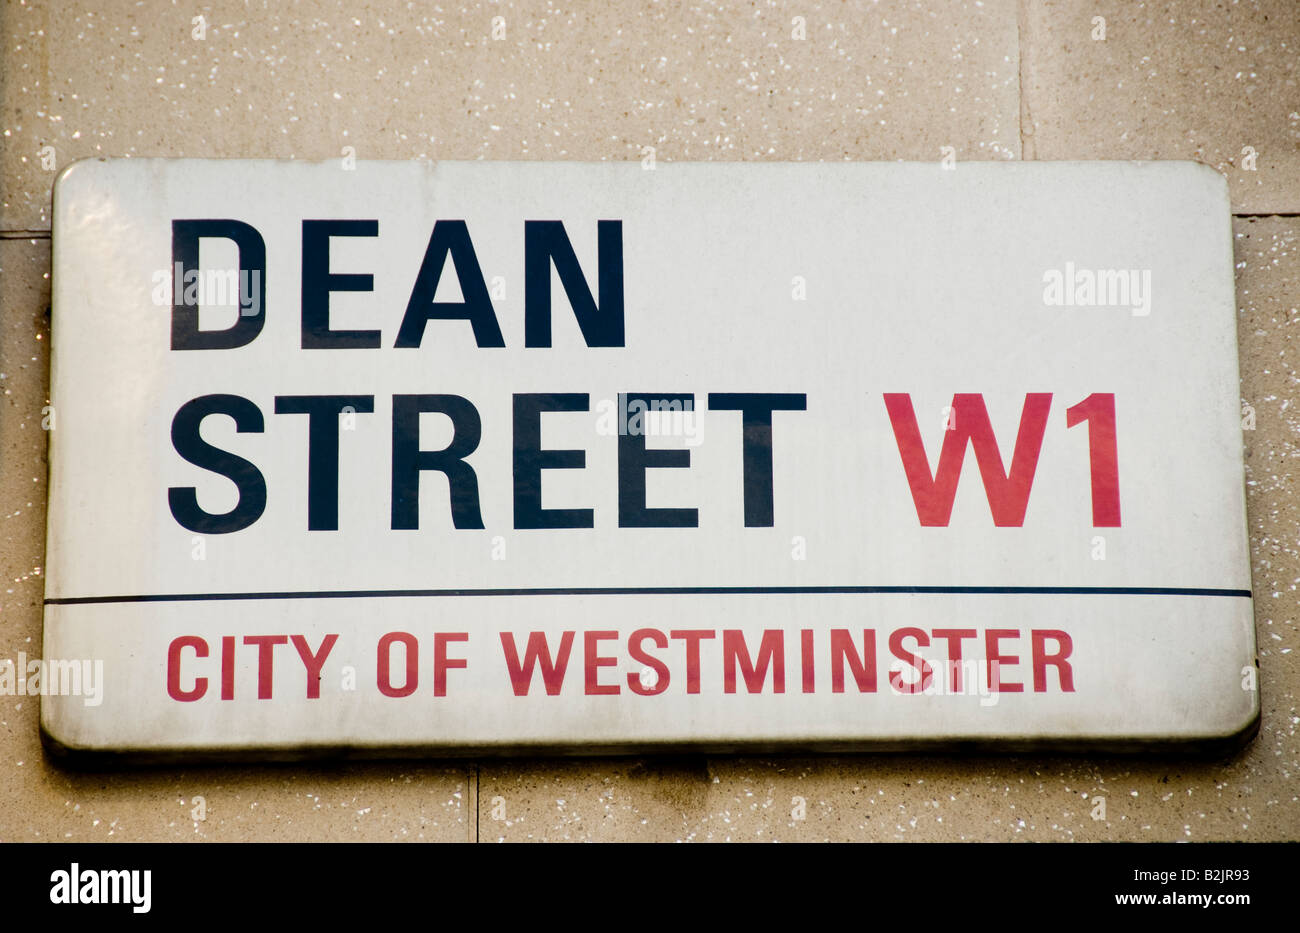 Dean Street sign in London - Stock Image